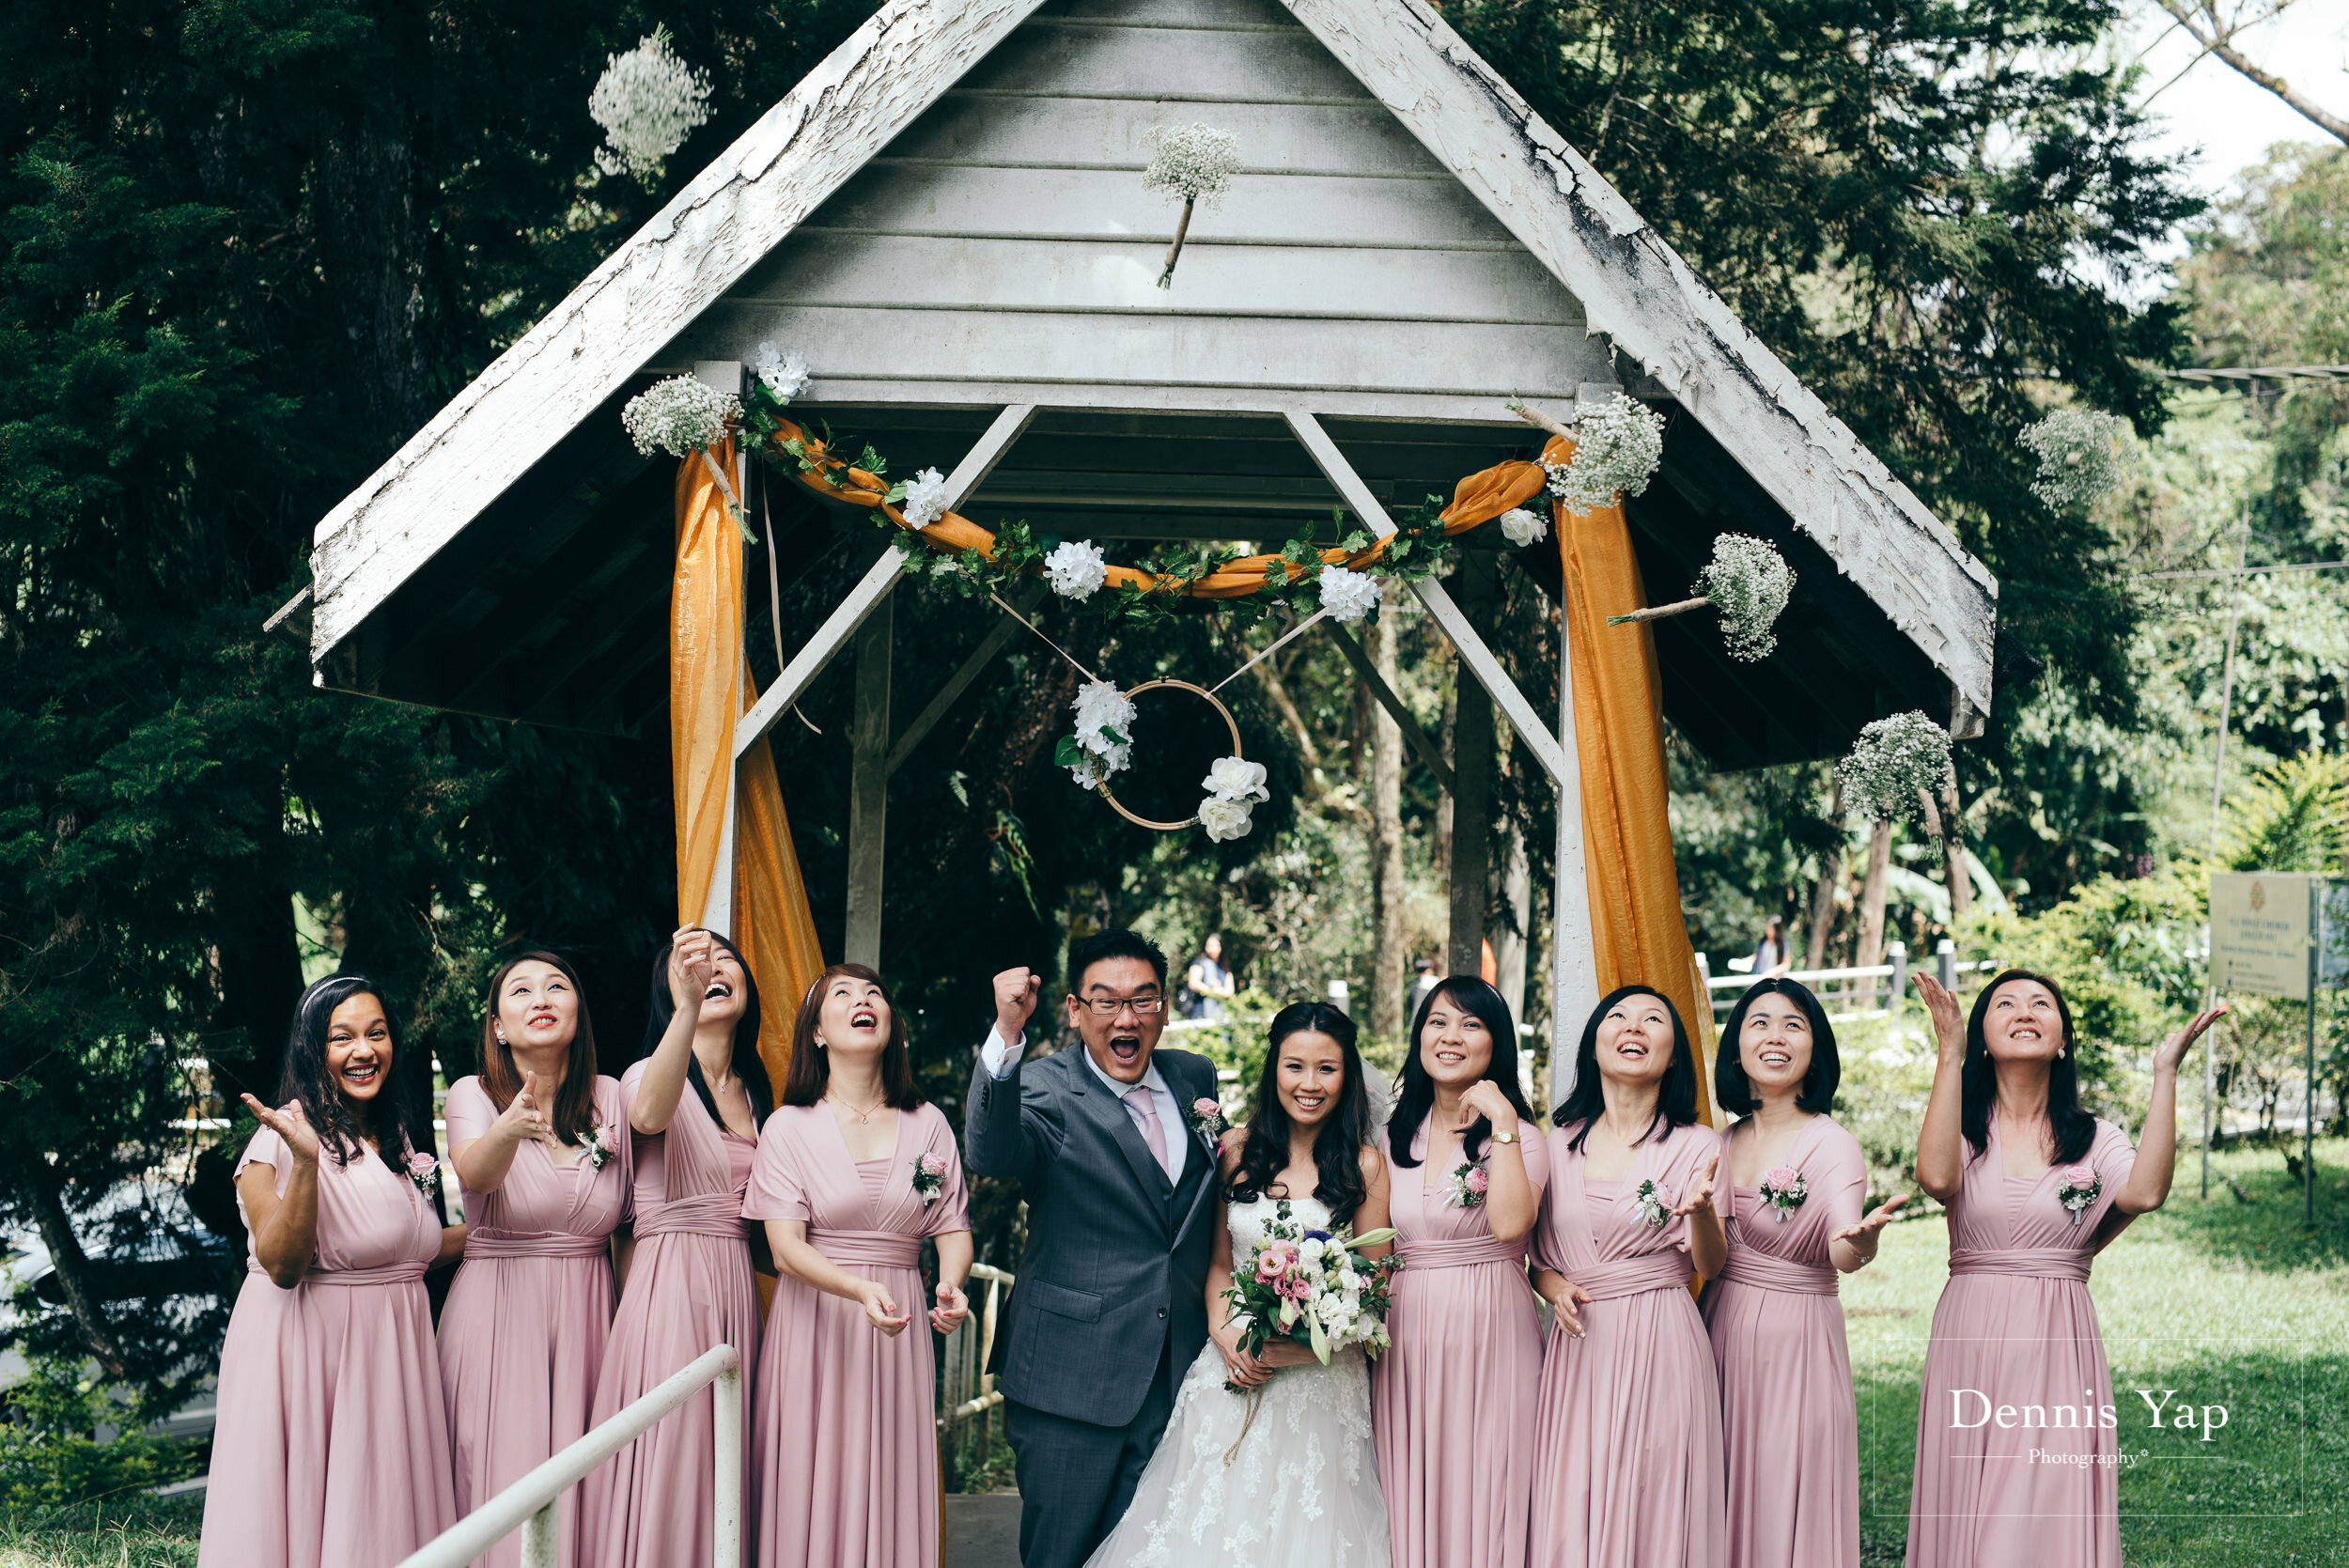 alex siowli wedding reception cameron highlands smoke house dennis yap photography malaysia traditional church wedding-127.jpg